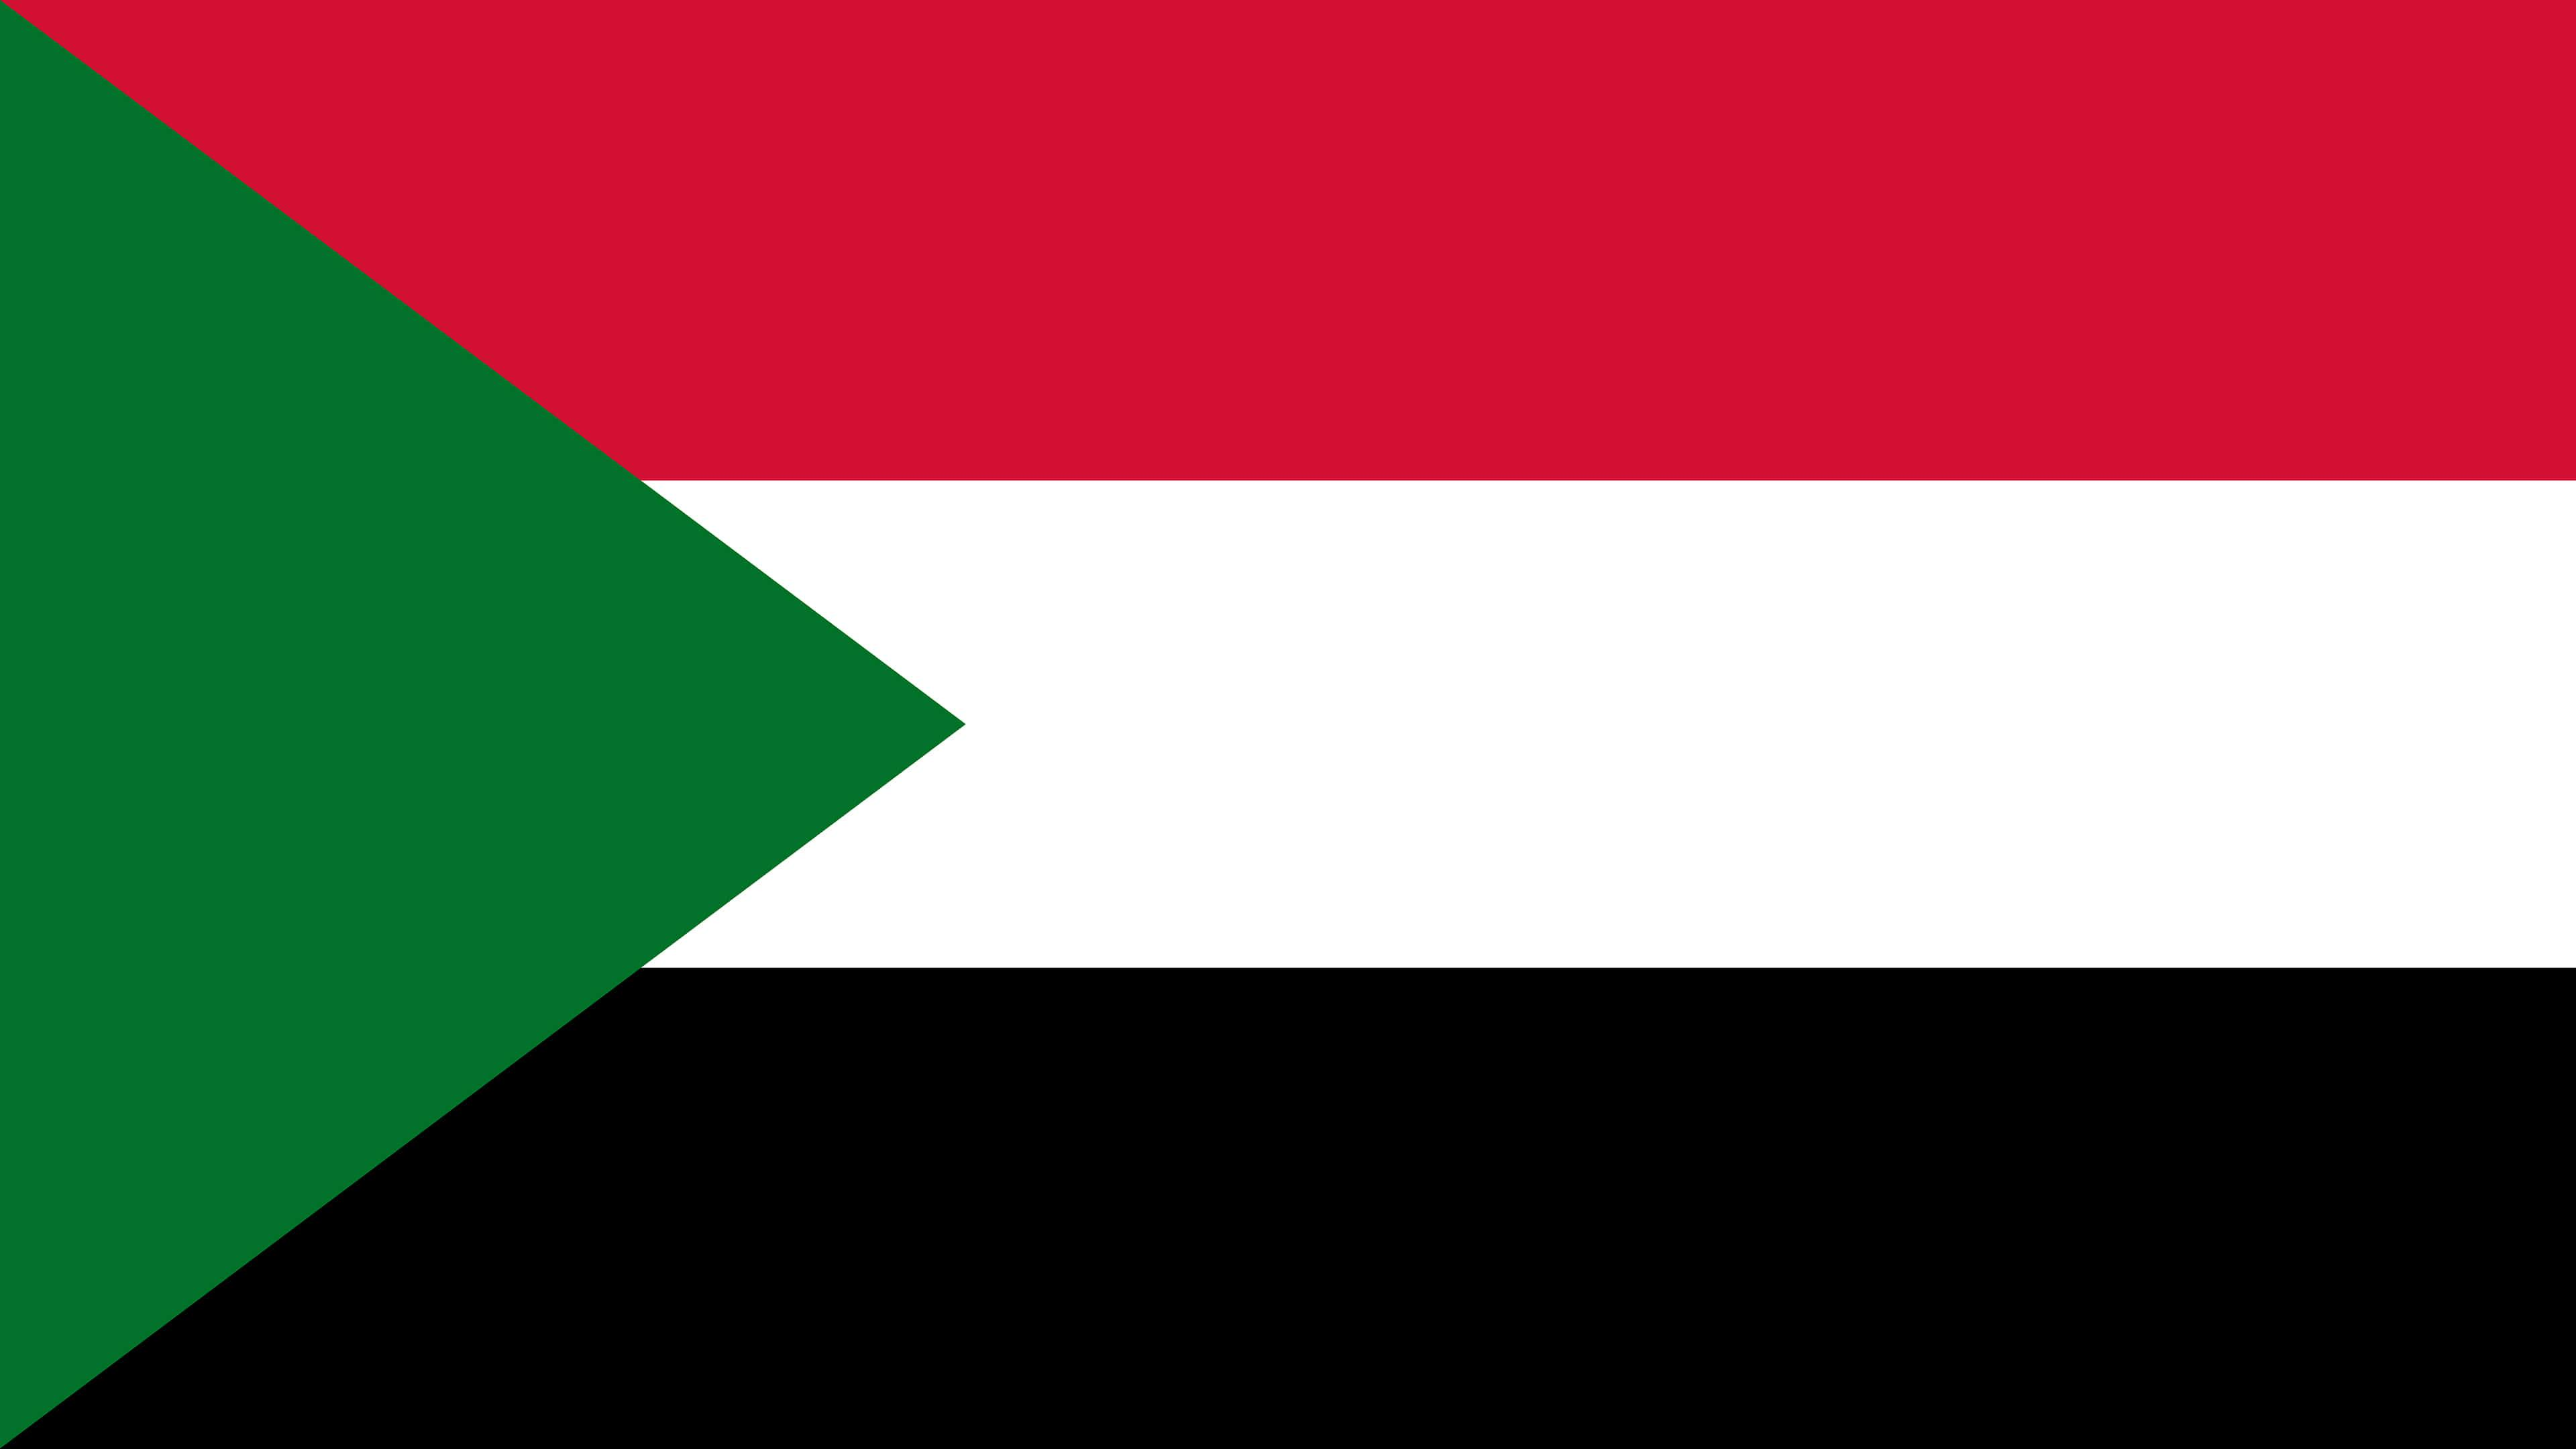 Sudan Flag UHD 4K Wallpaper | Pixelz